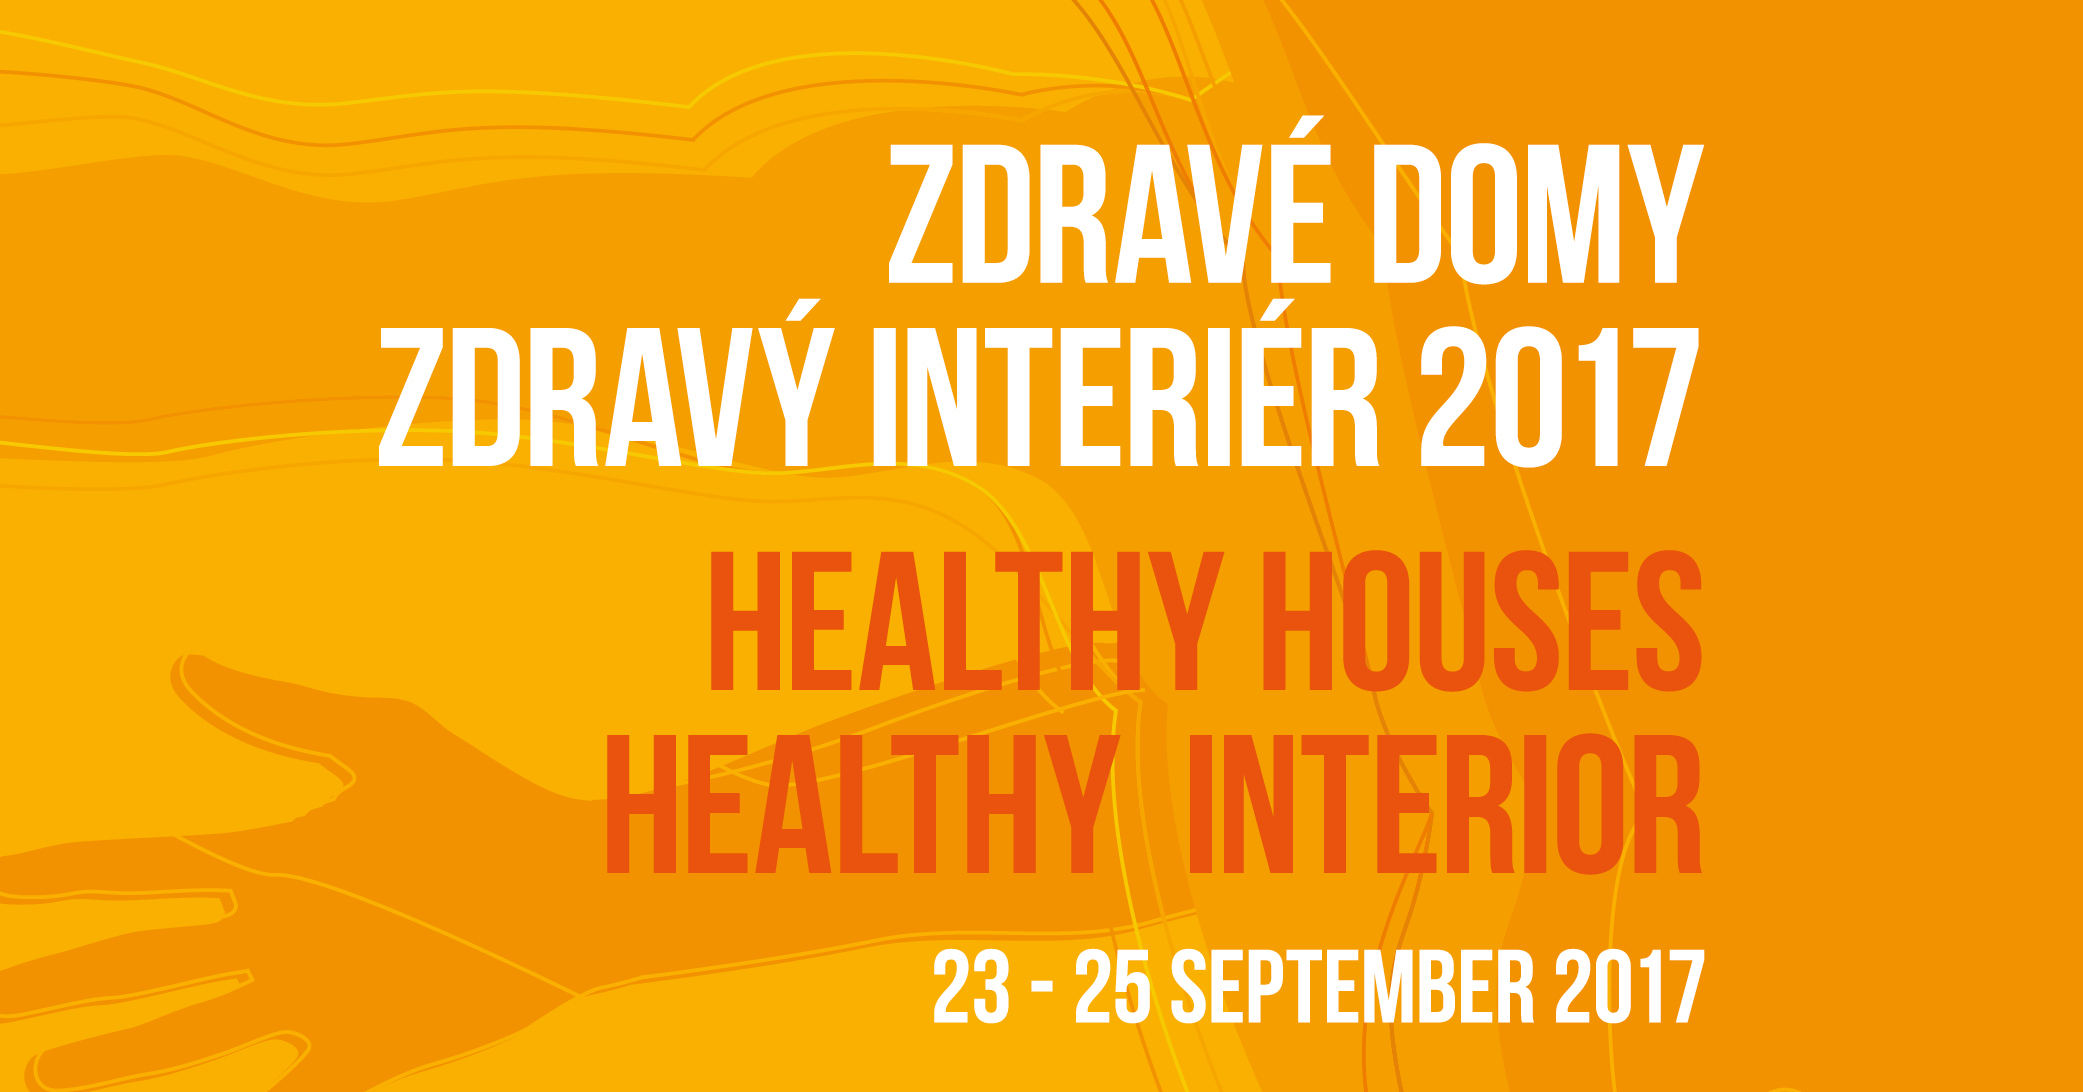 event_fb_zdrave_domy